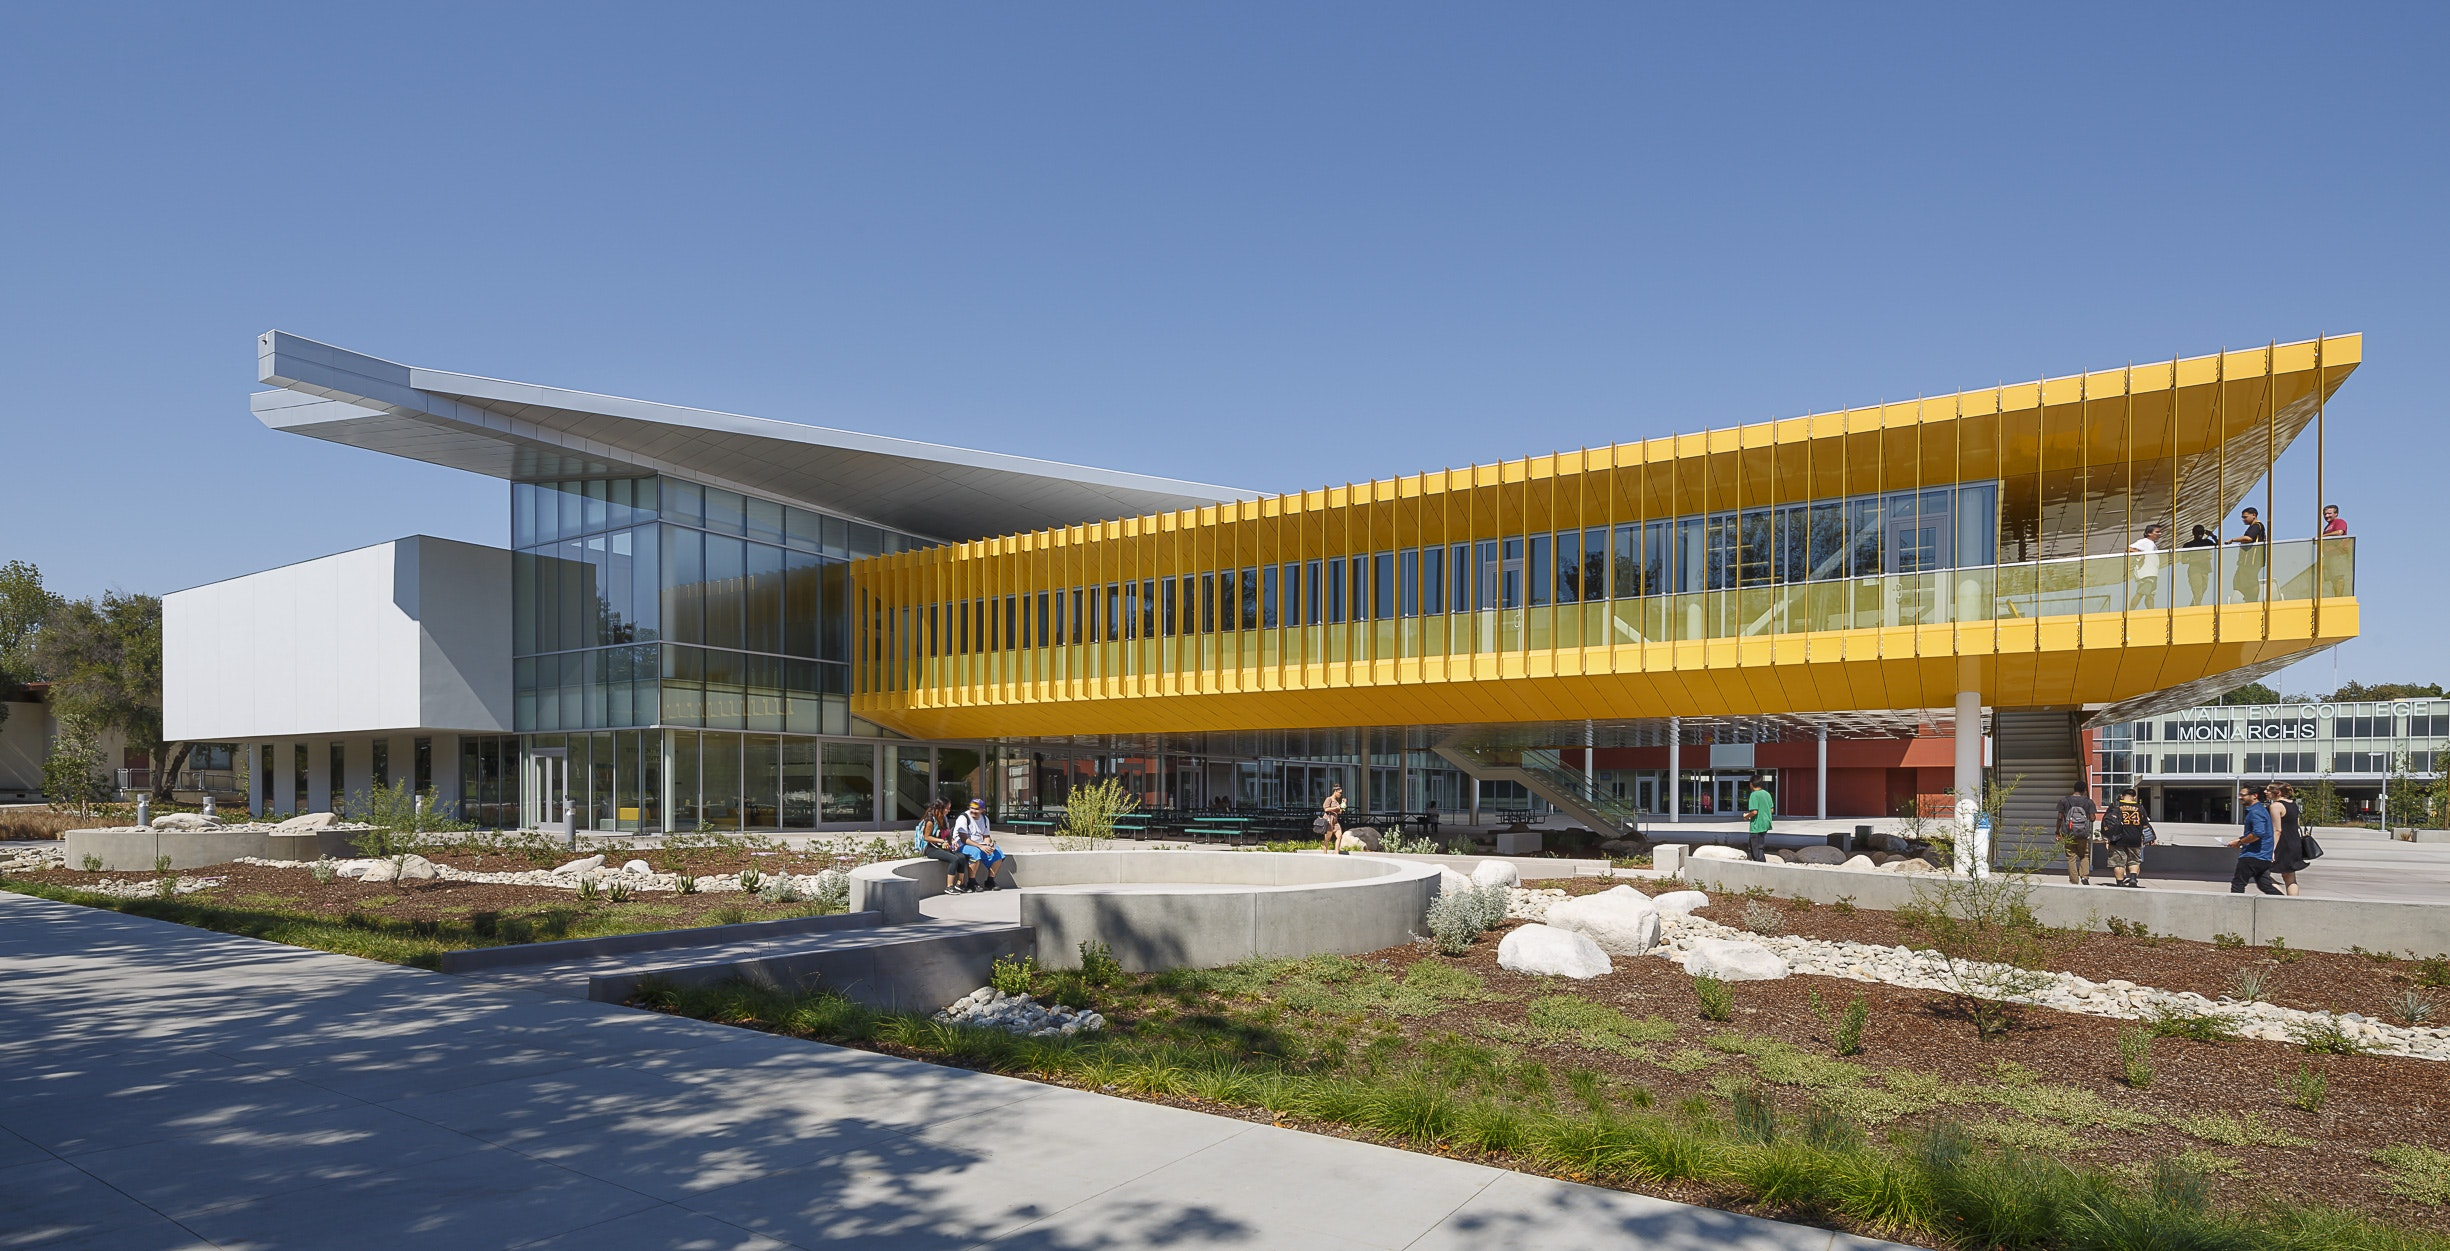 (Los Angeles, CA) June 22, 2016    Los Angeles Valley College (LAVC)  Recently Completed Its New 66,000 Square Foot, Two Story Monarch Student  Center ...